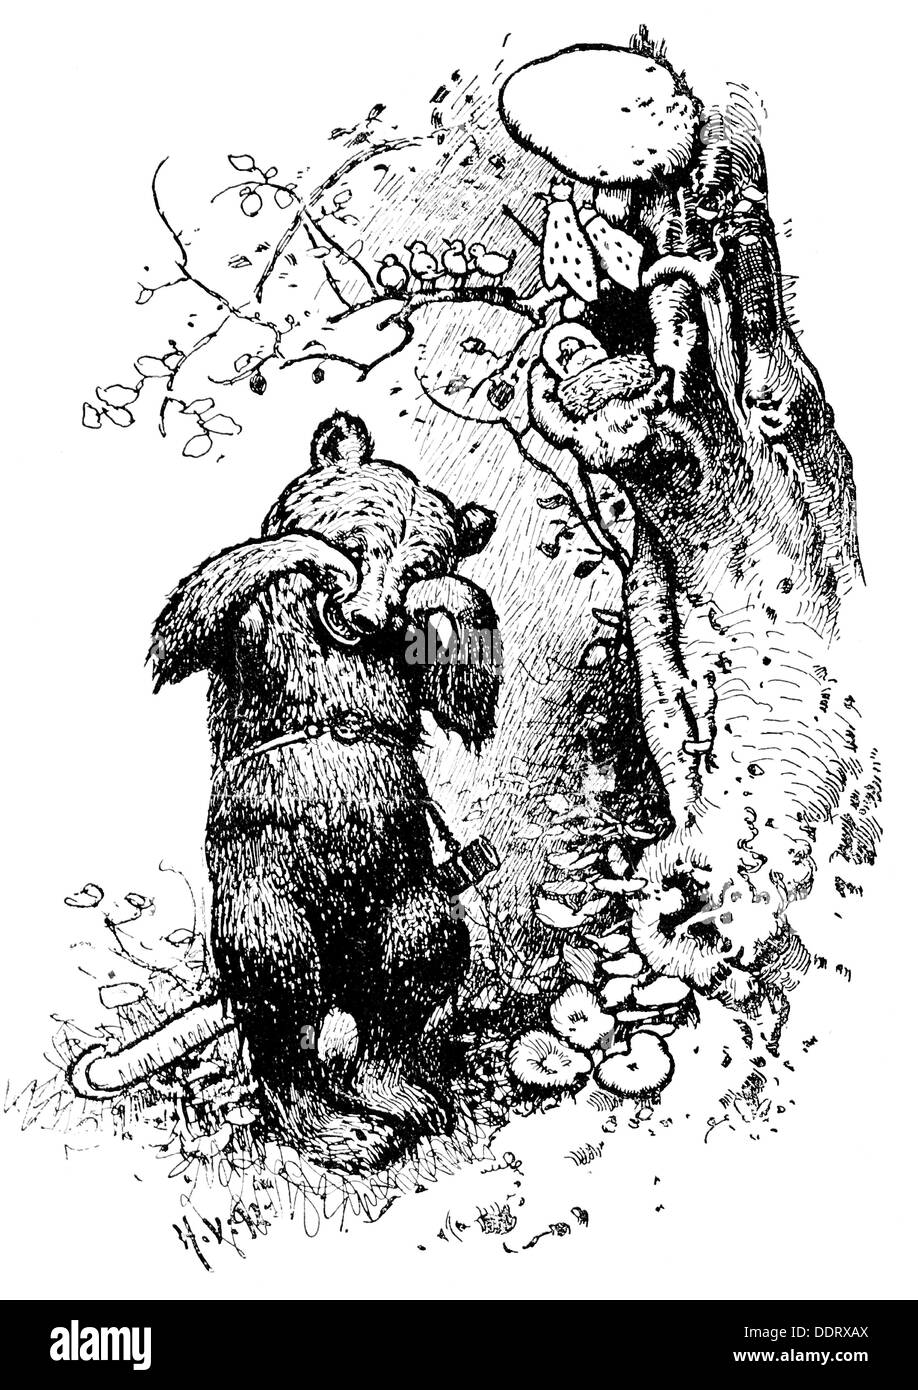 literature, fairy tales, Grimm Brothers, 'The Wren and the Bear', drawing by Hermann Vogel (1854 - 1921), from: 'Kinder- und Hausmärchen', 1894, Additional-Rights-Clearences-NA - Stock Image